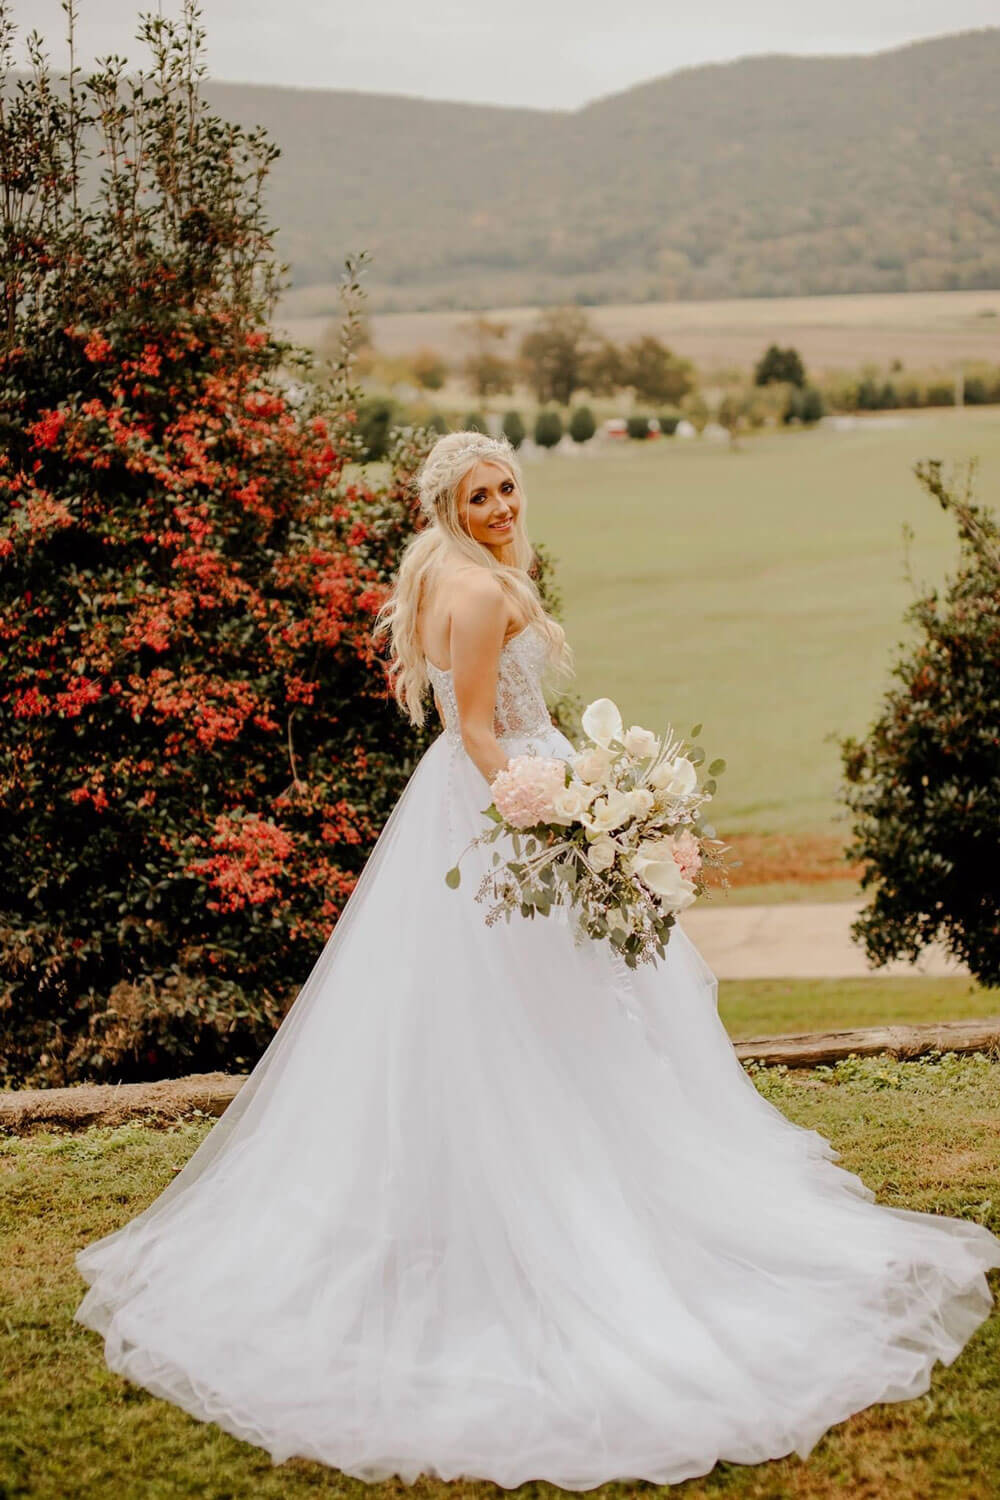 Natalies Bridal. Featured  Bride. Image 1